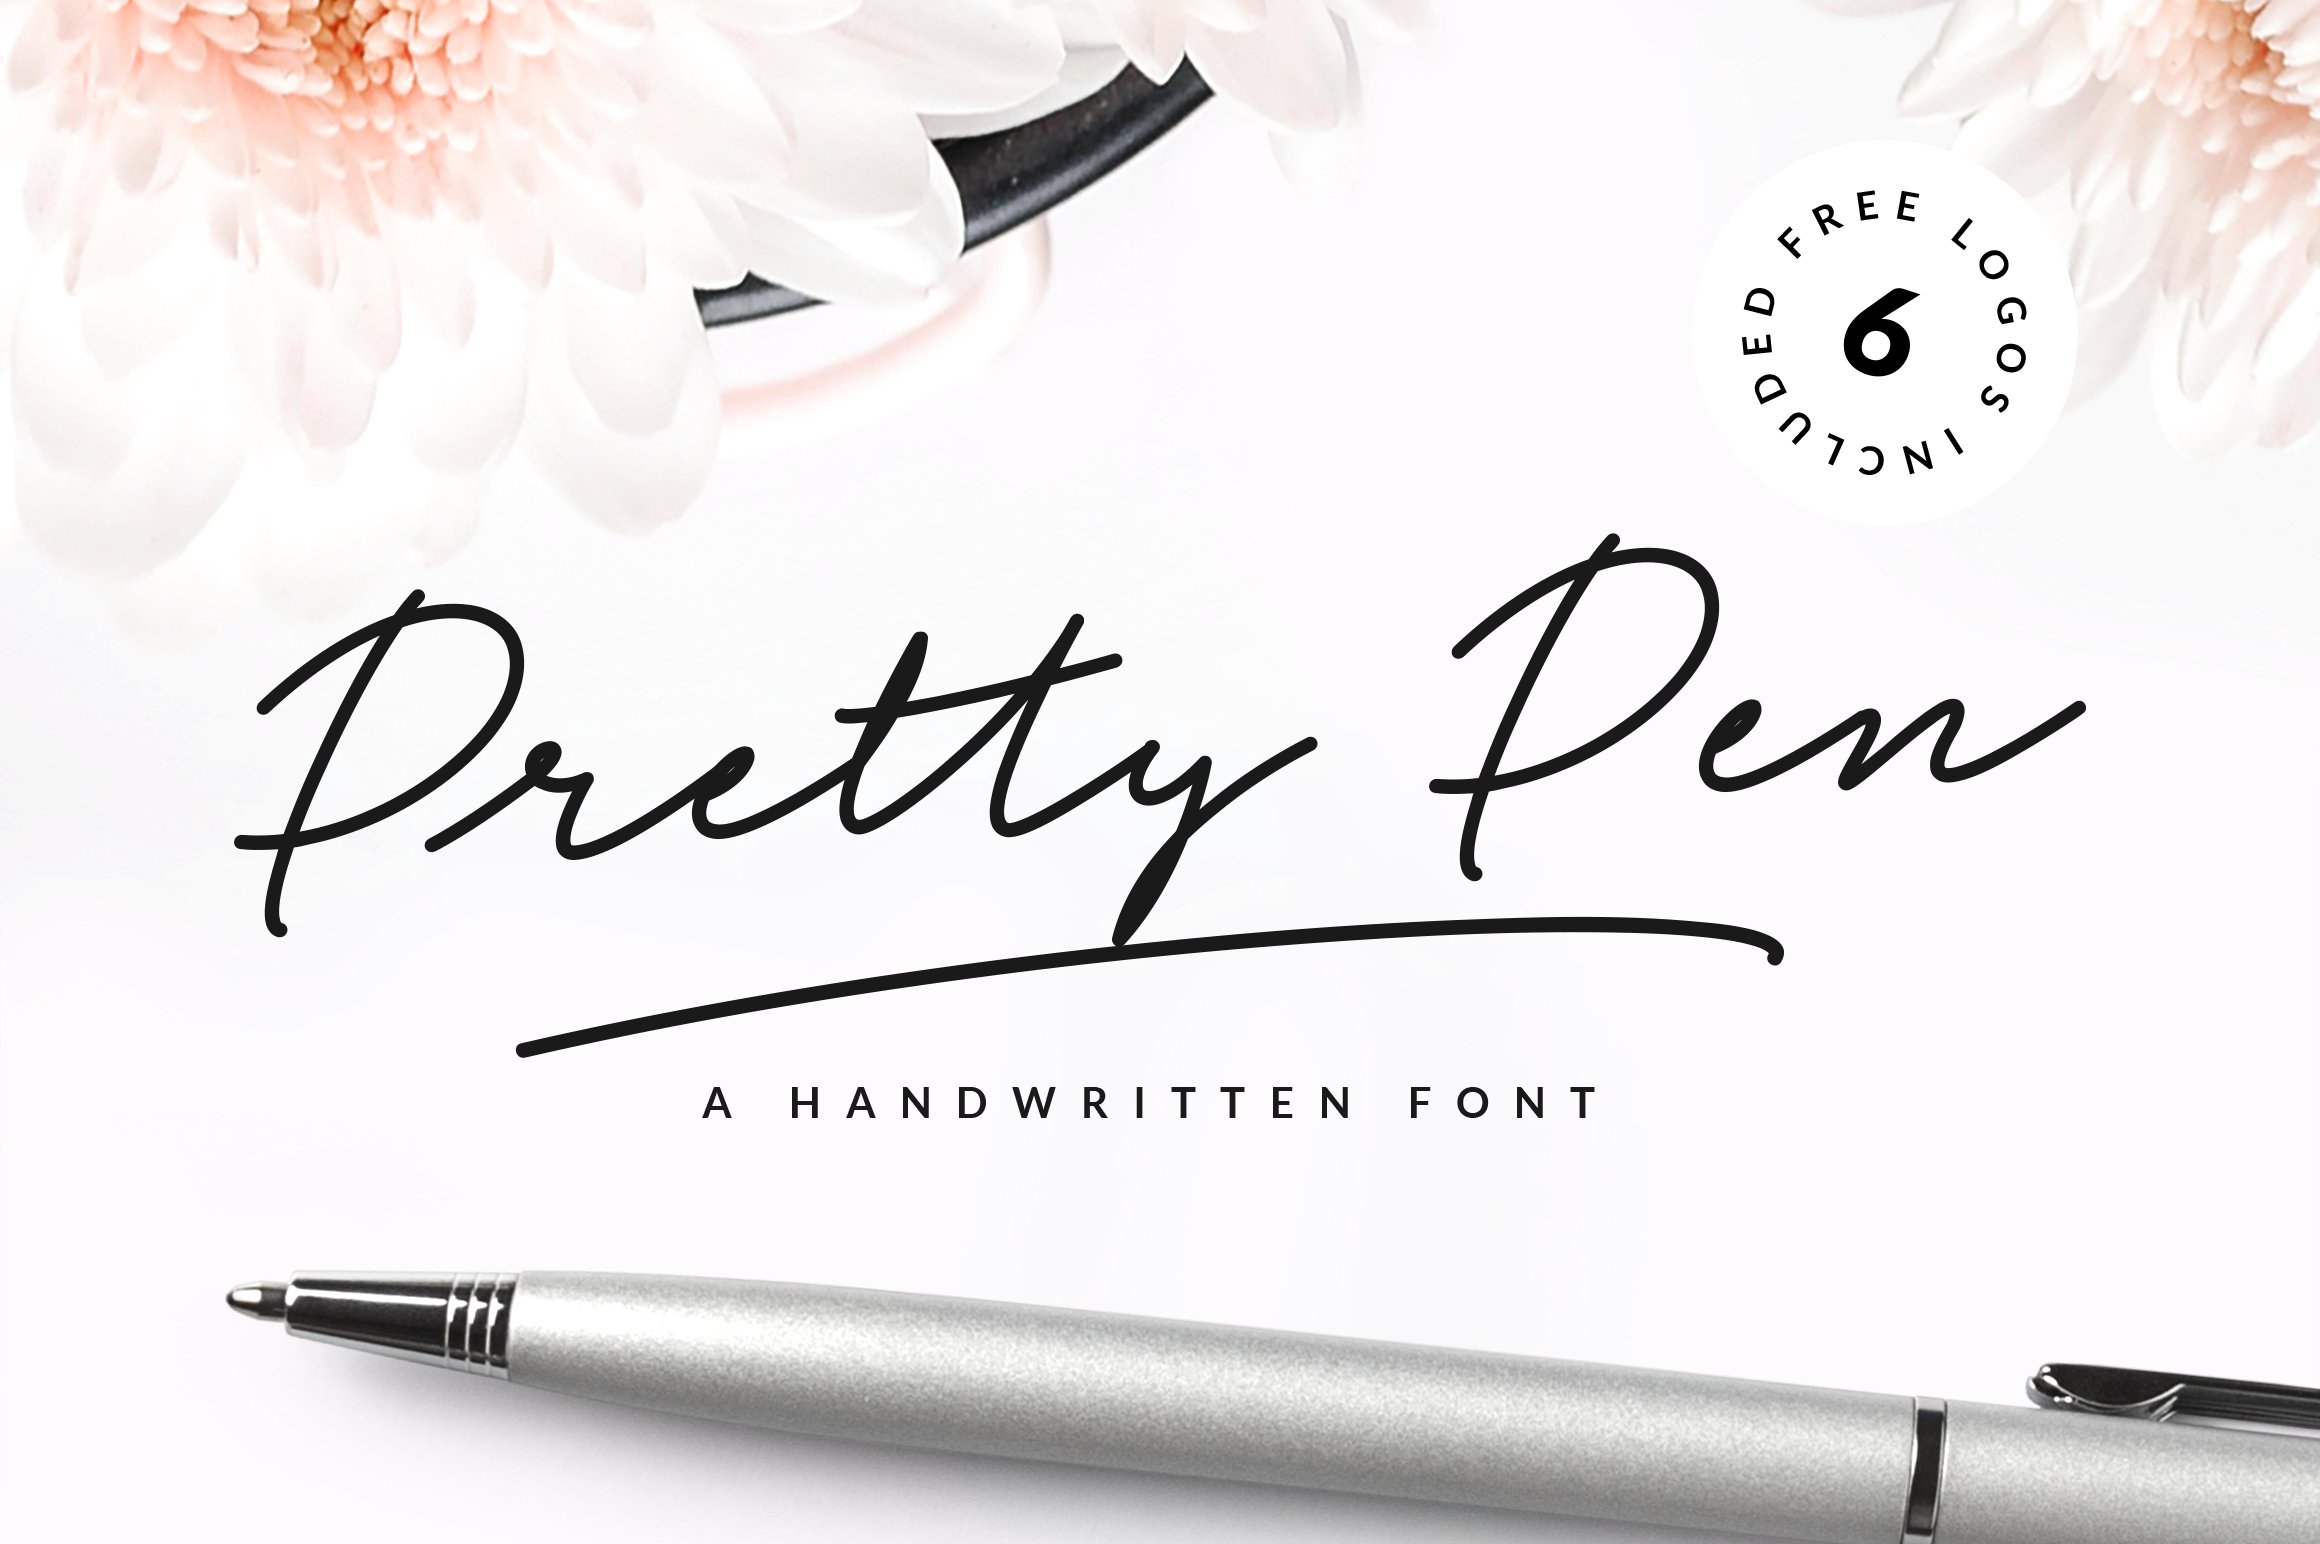 Pretty pen handwritten font script fonts creative market Handwriting calligraphy